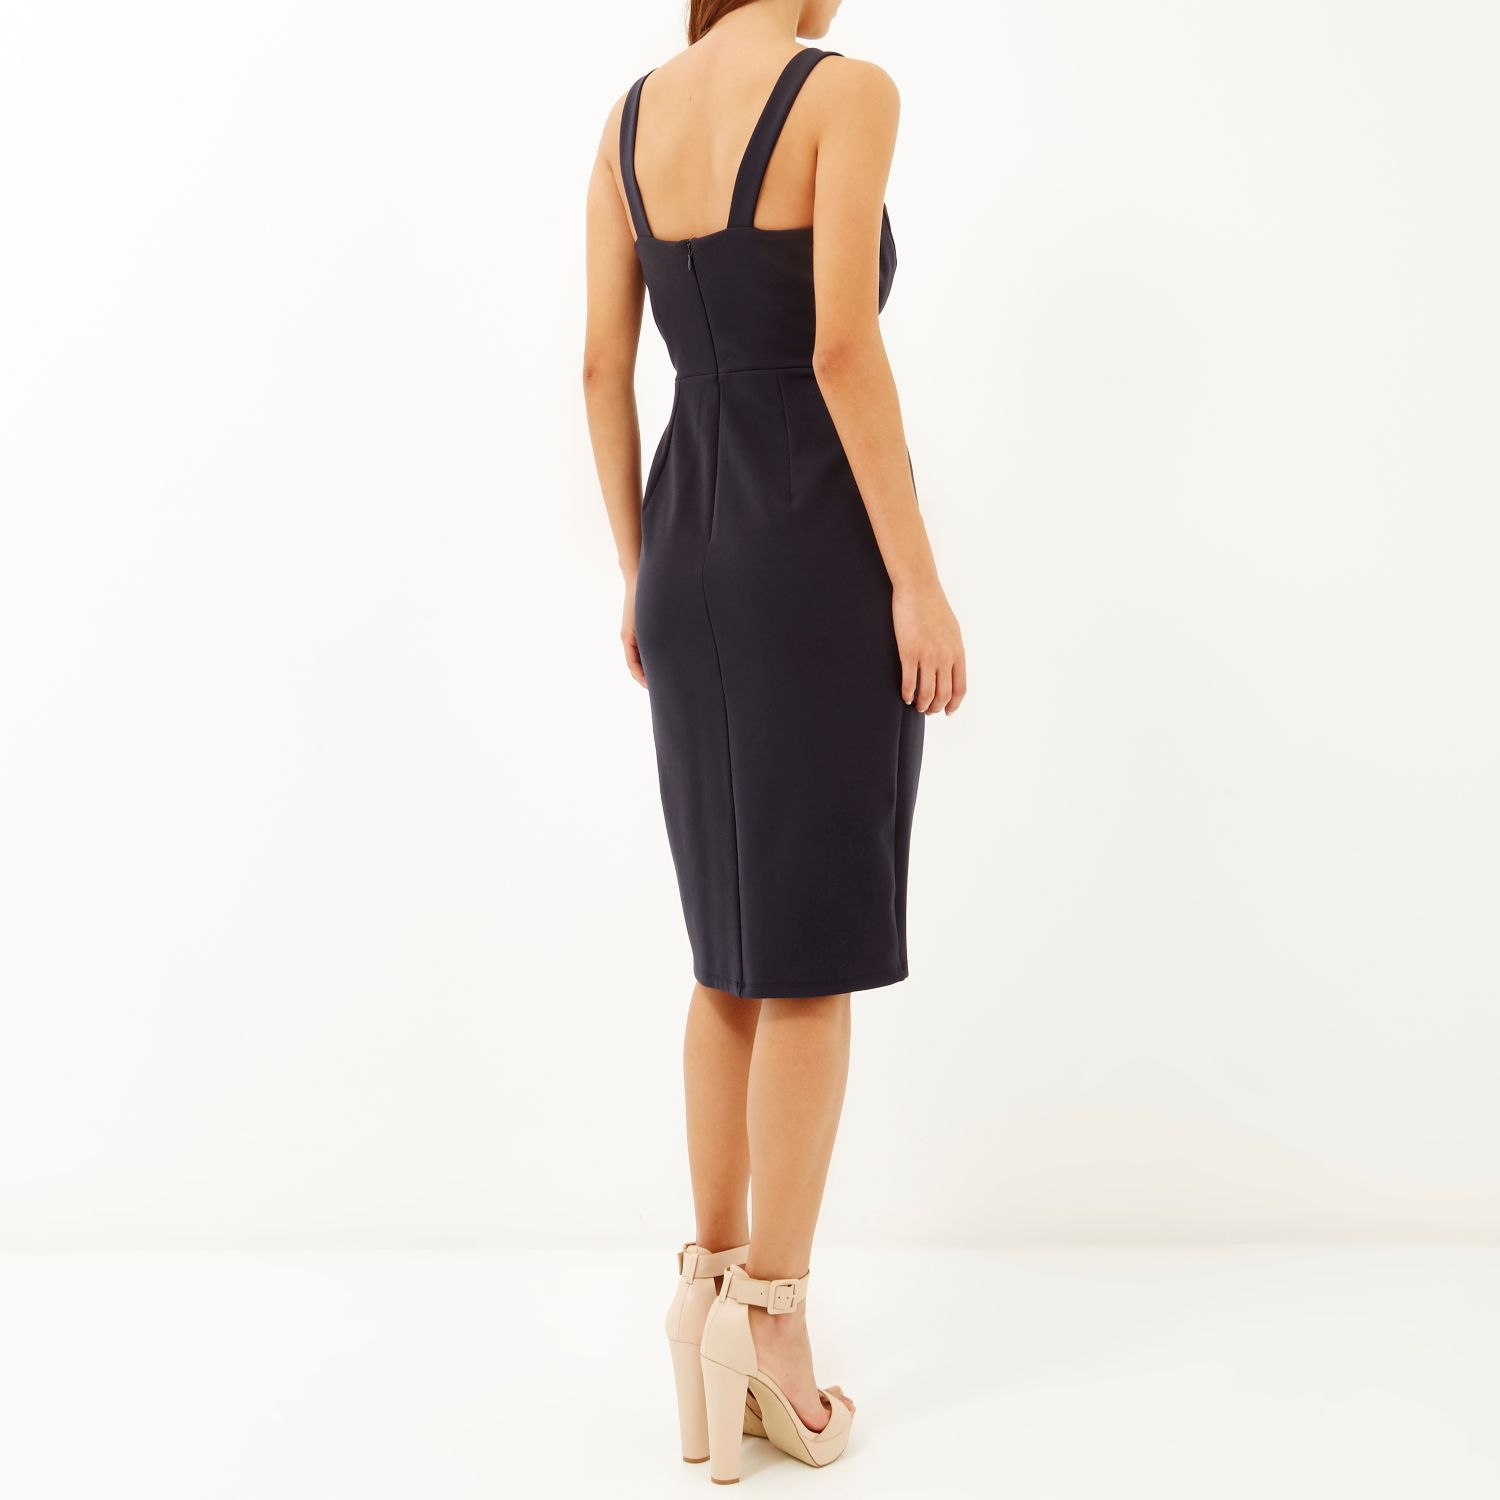 Wal g wrap detail dress with metallic stripe in blue navy lyst - Be Inspired